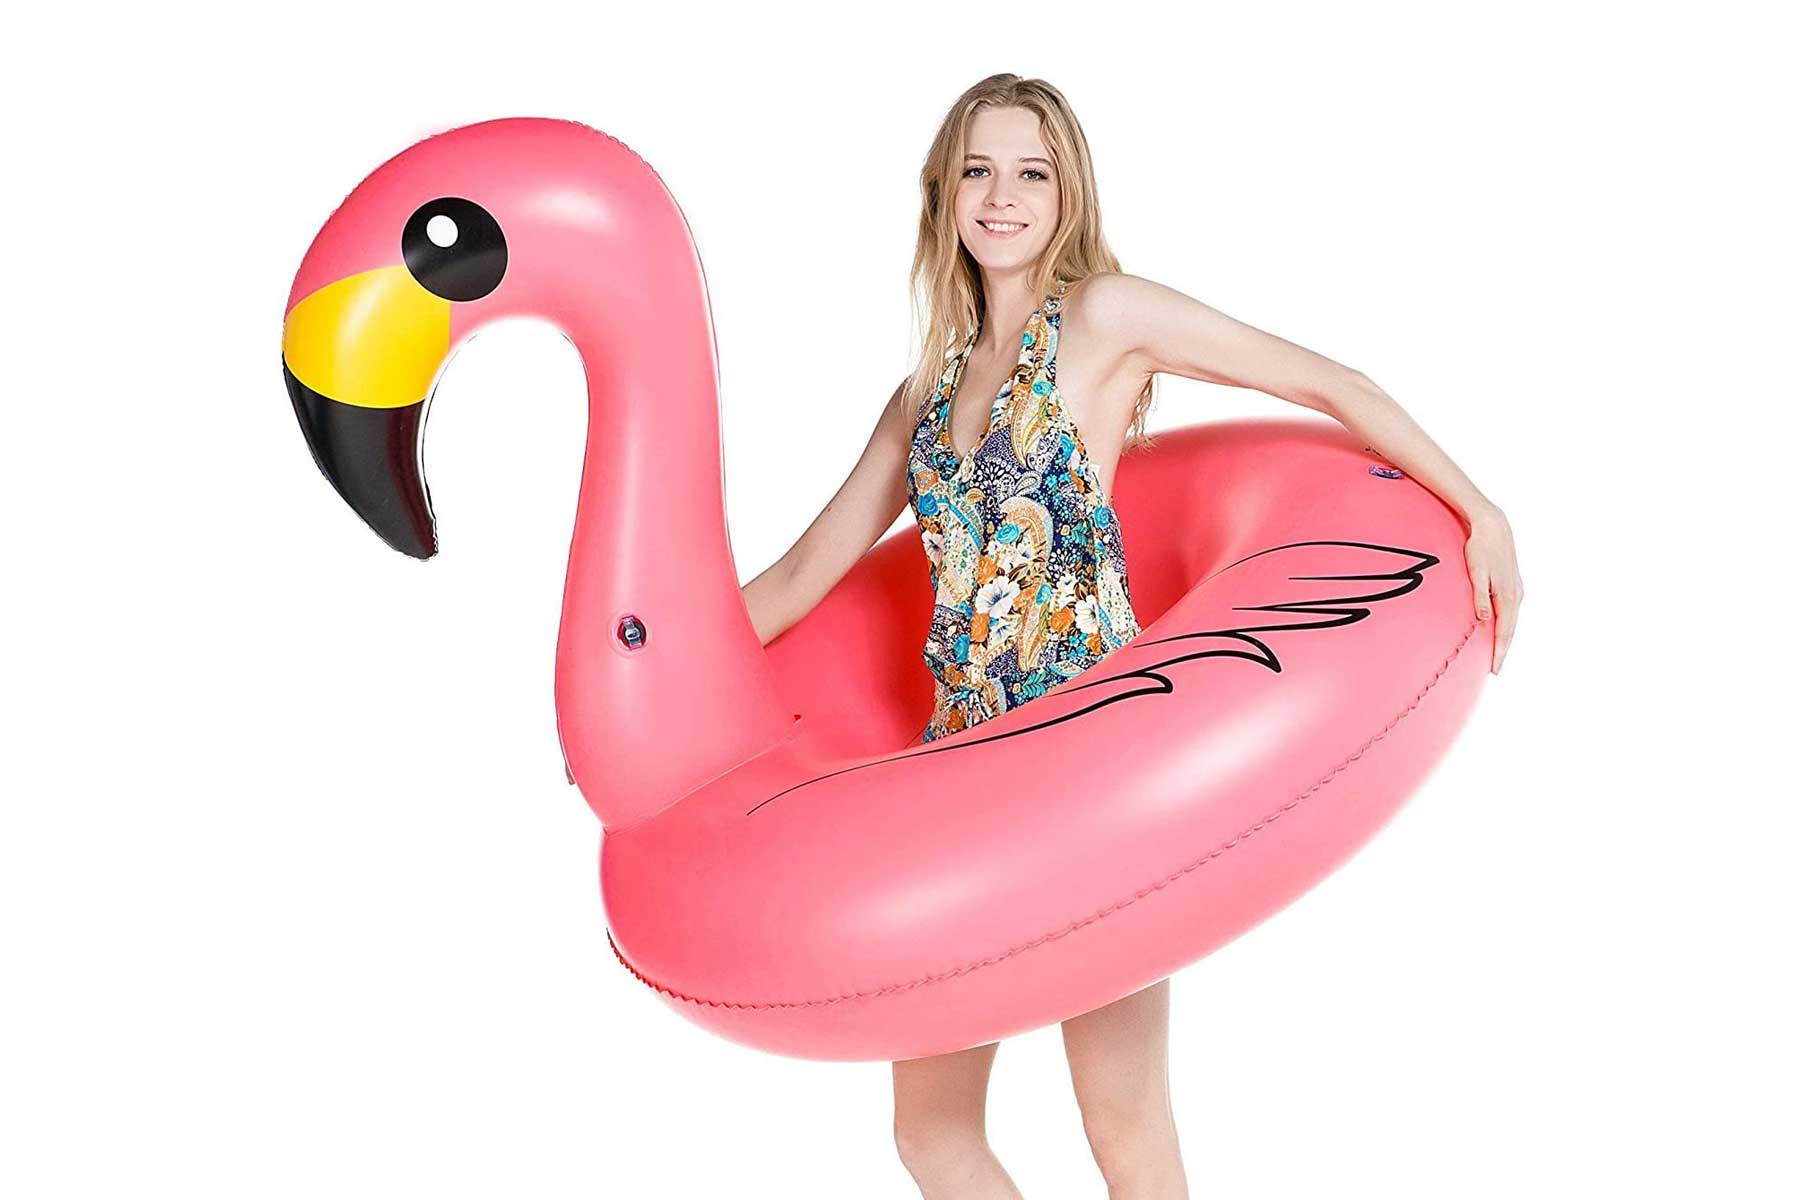 This giant flamingo pool float is the ideal pink beach companion.To buy: amazon.com, $18